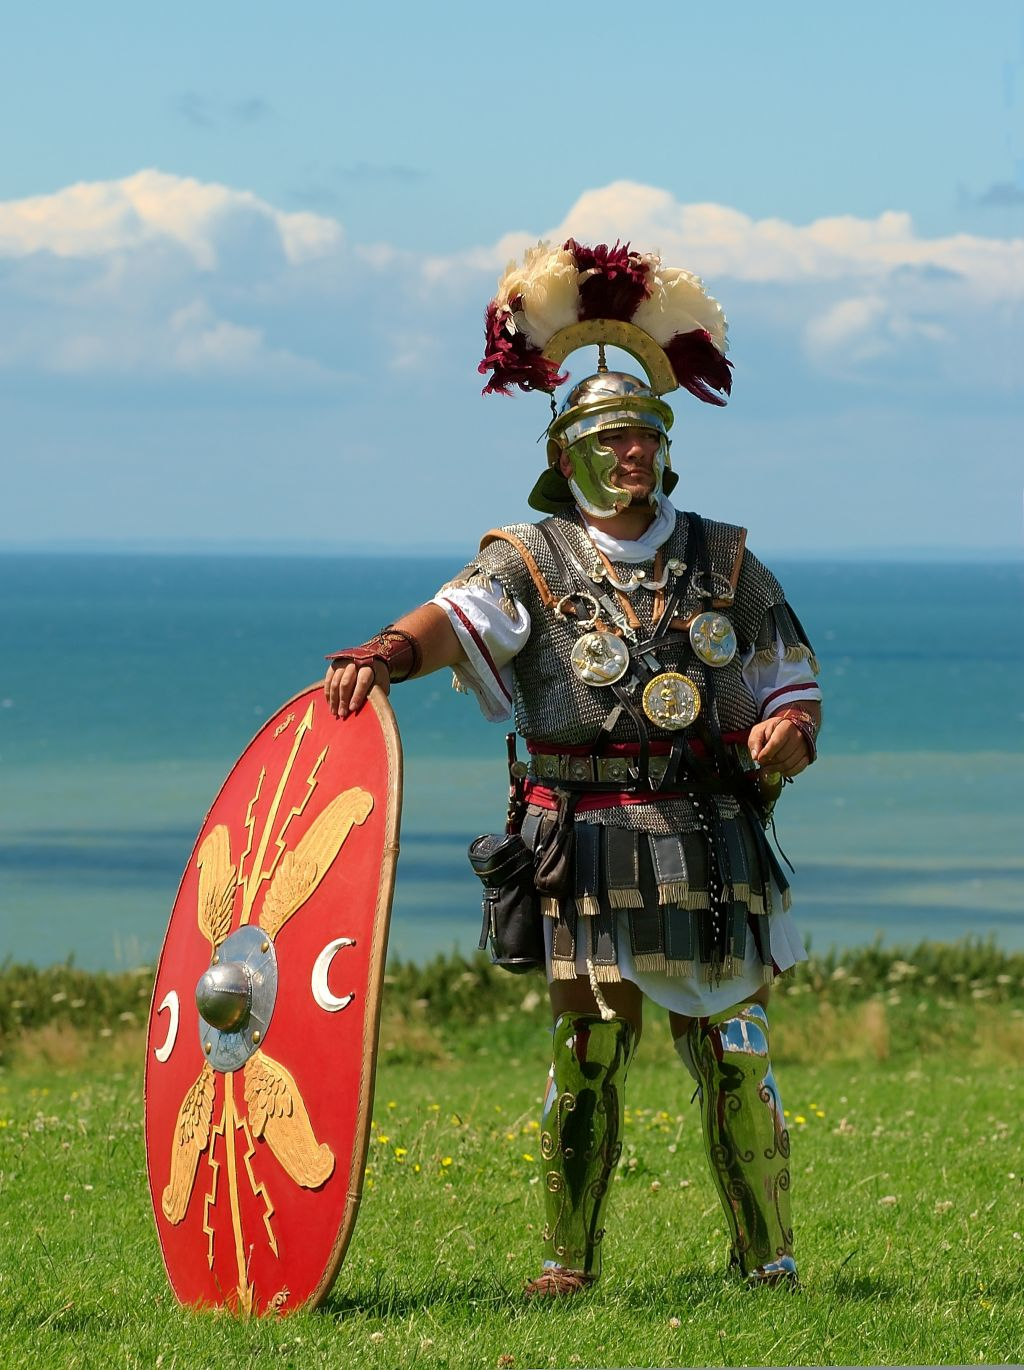 Roman Soldiers editorial stock photo. Image of legions